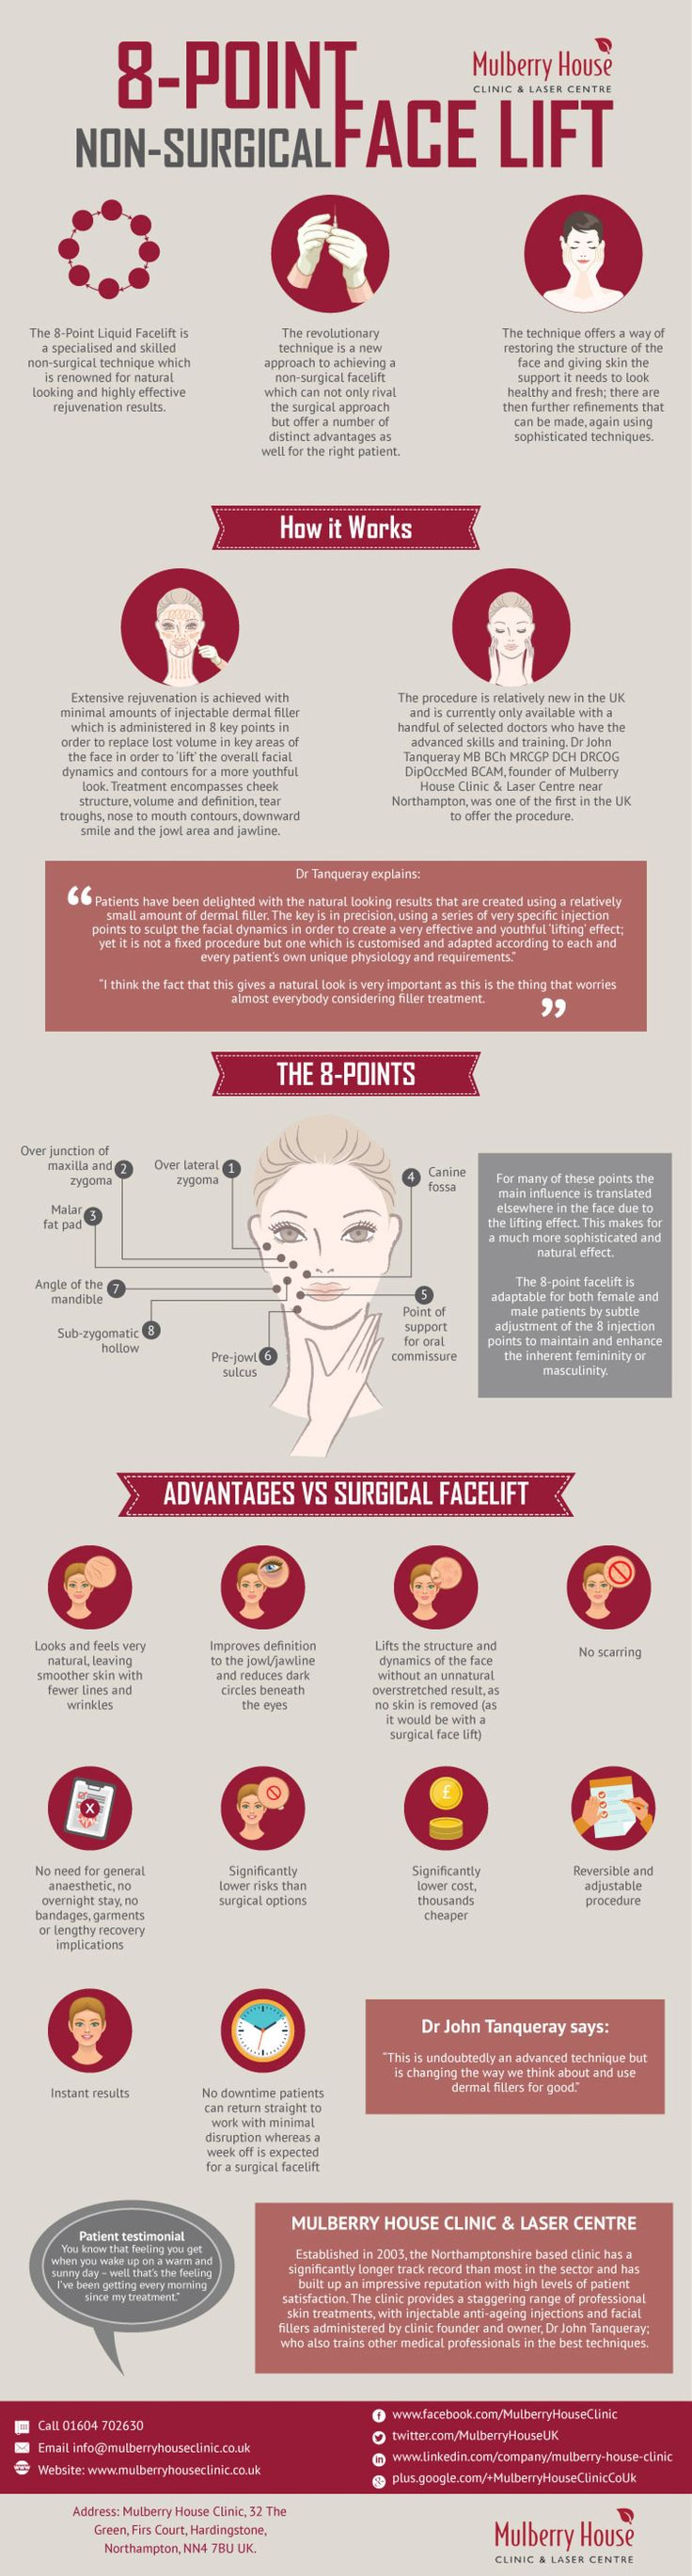 Non-surgical facelift you can use at home. Proven effective since 2002. #facelift, #beauty, #facial